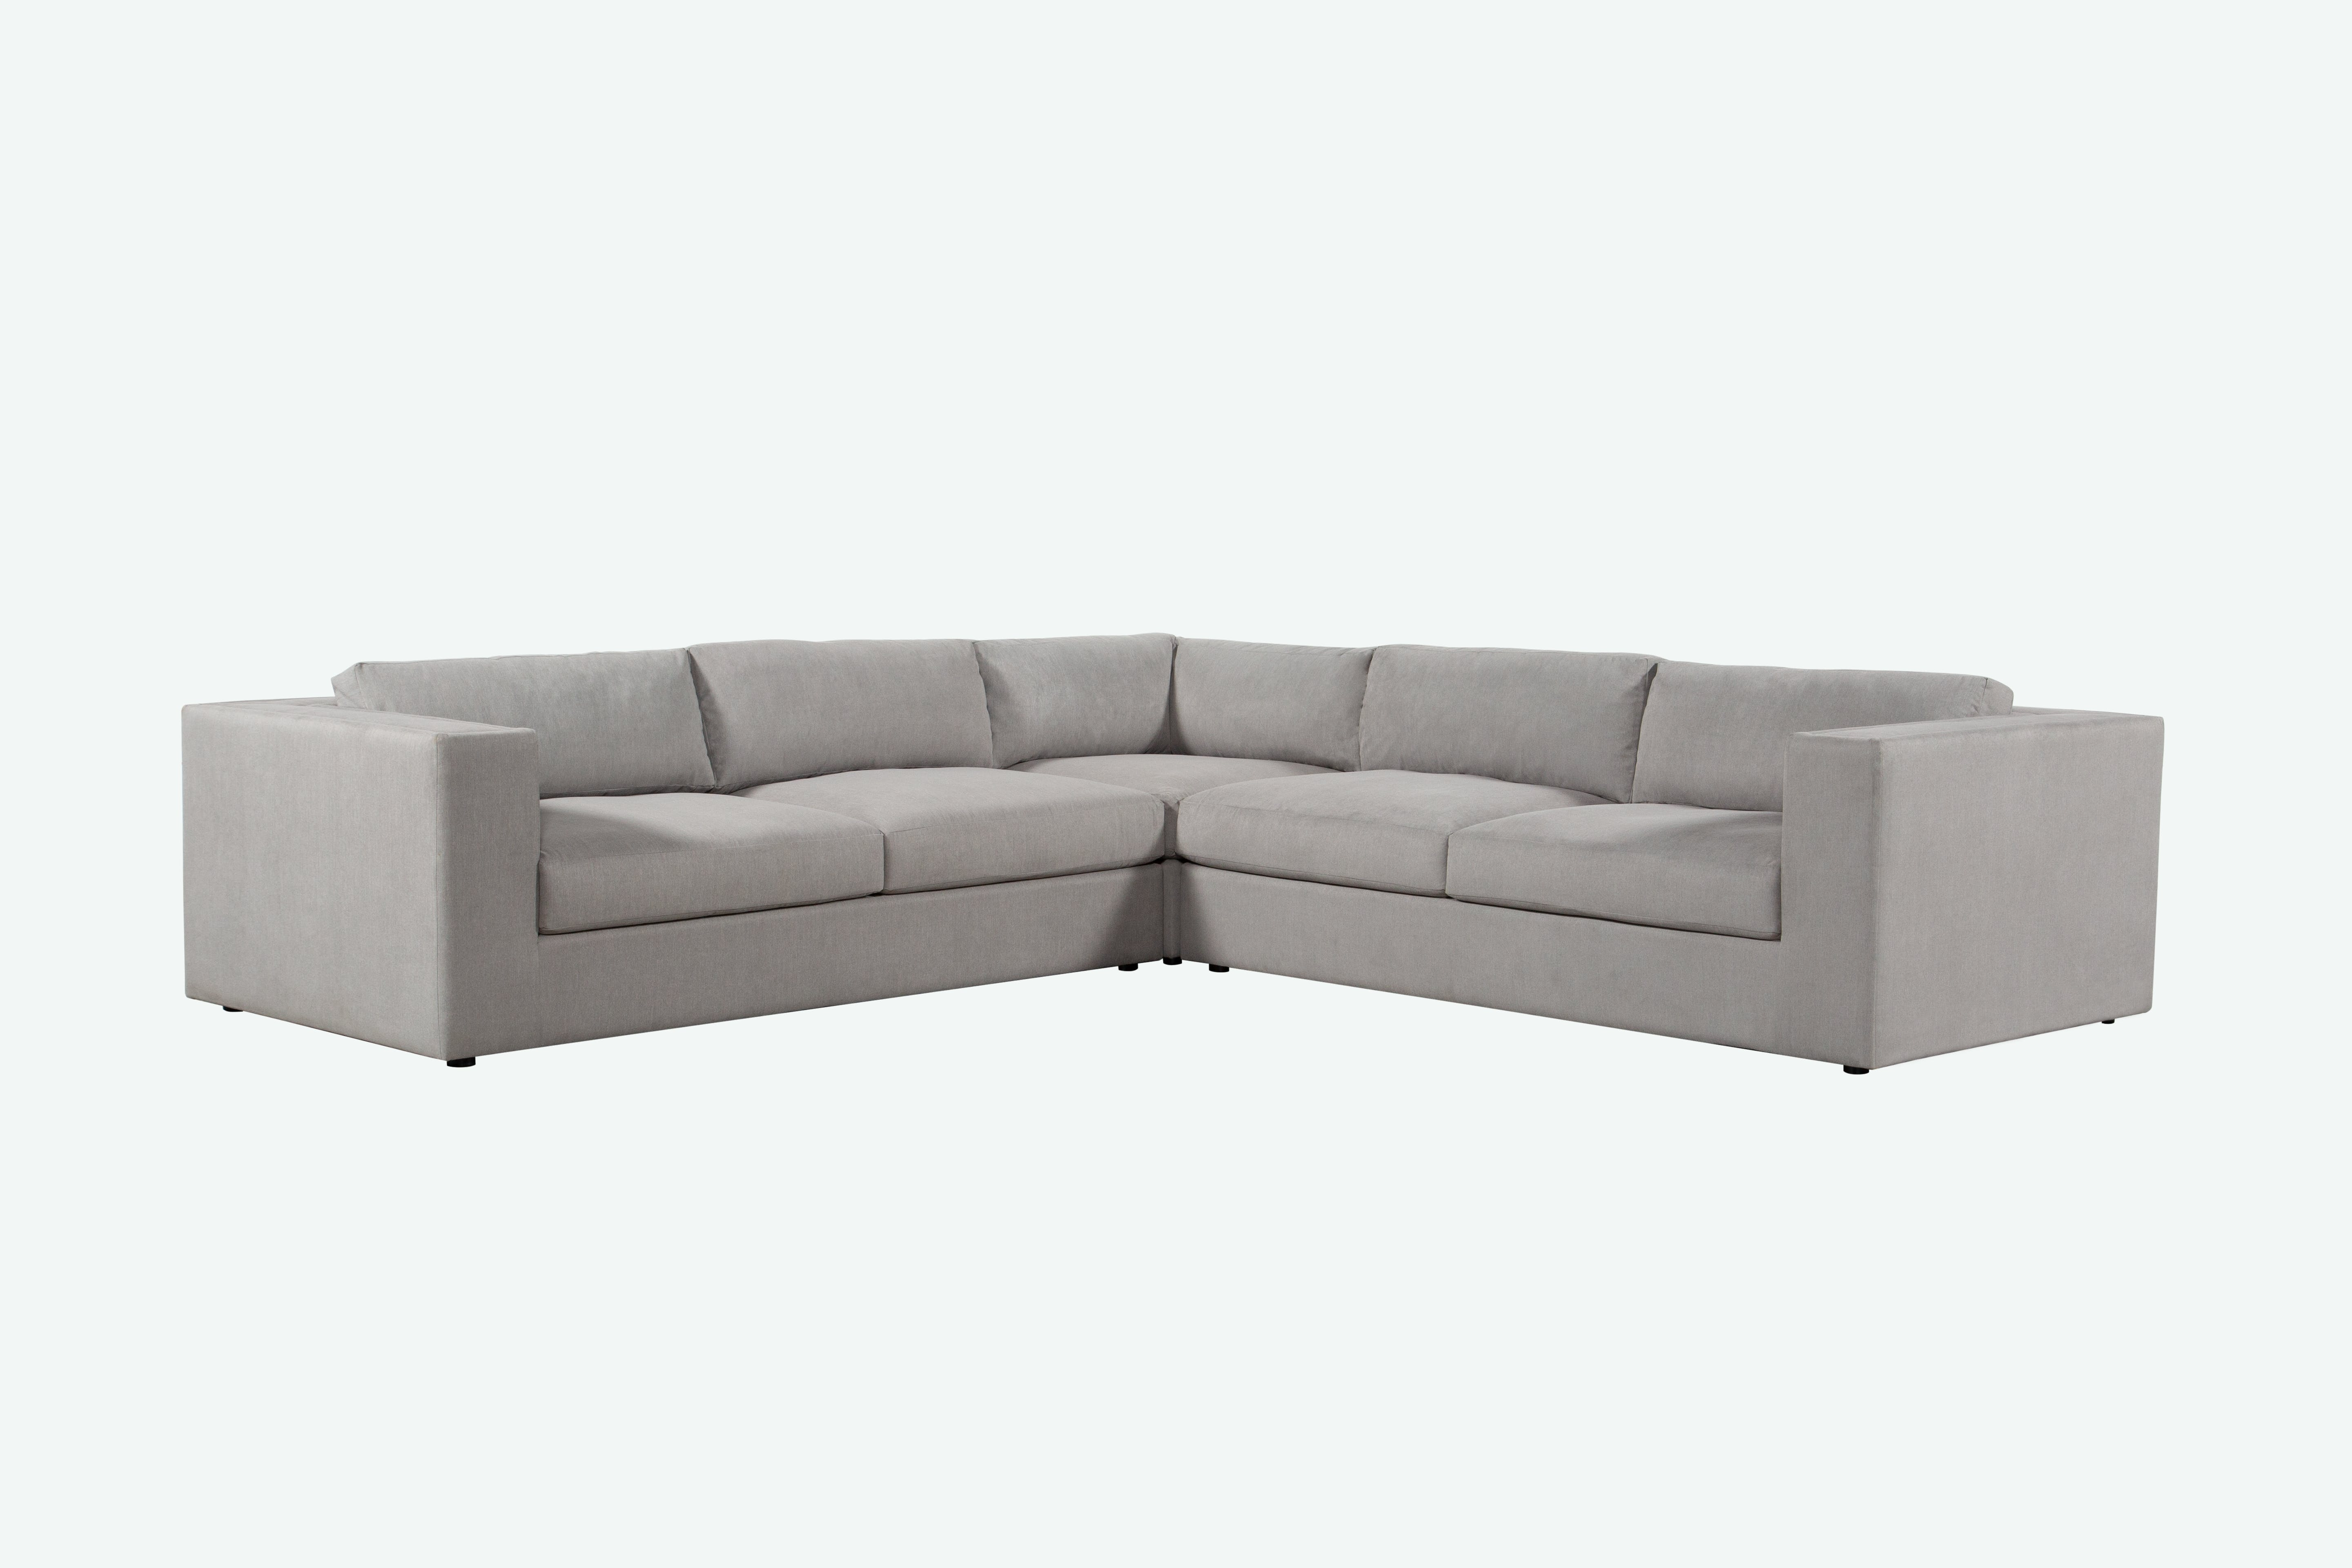 Featured Image of Whitley 3 Piece Sectionals By Nate Berkus And Jeremiah Brent